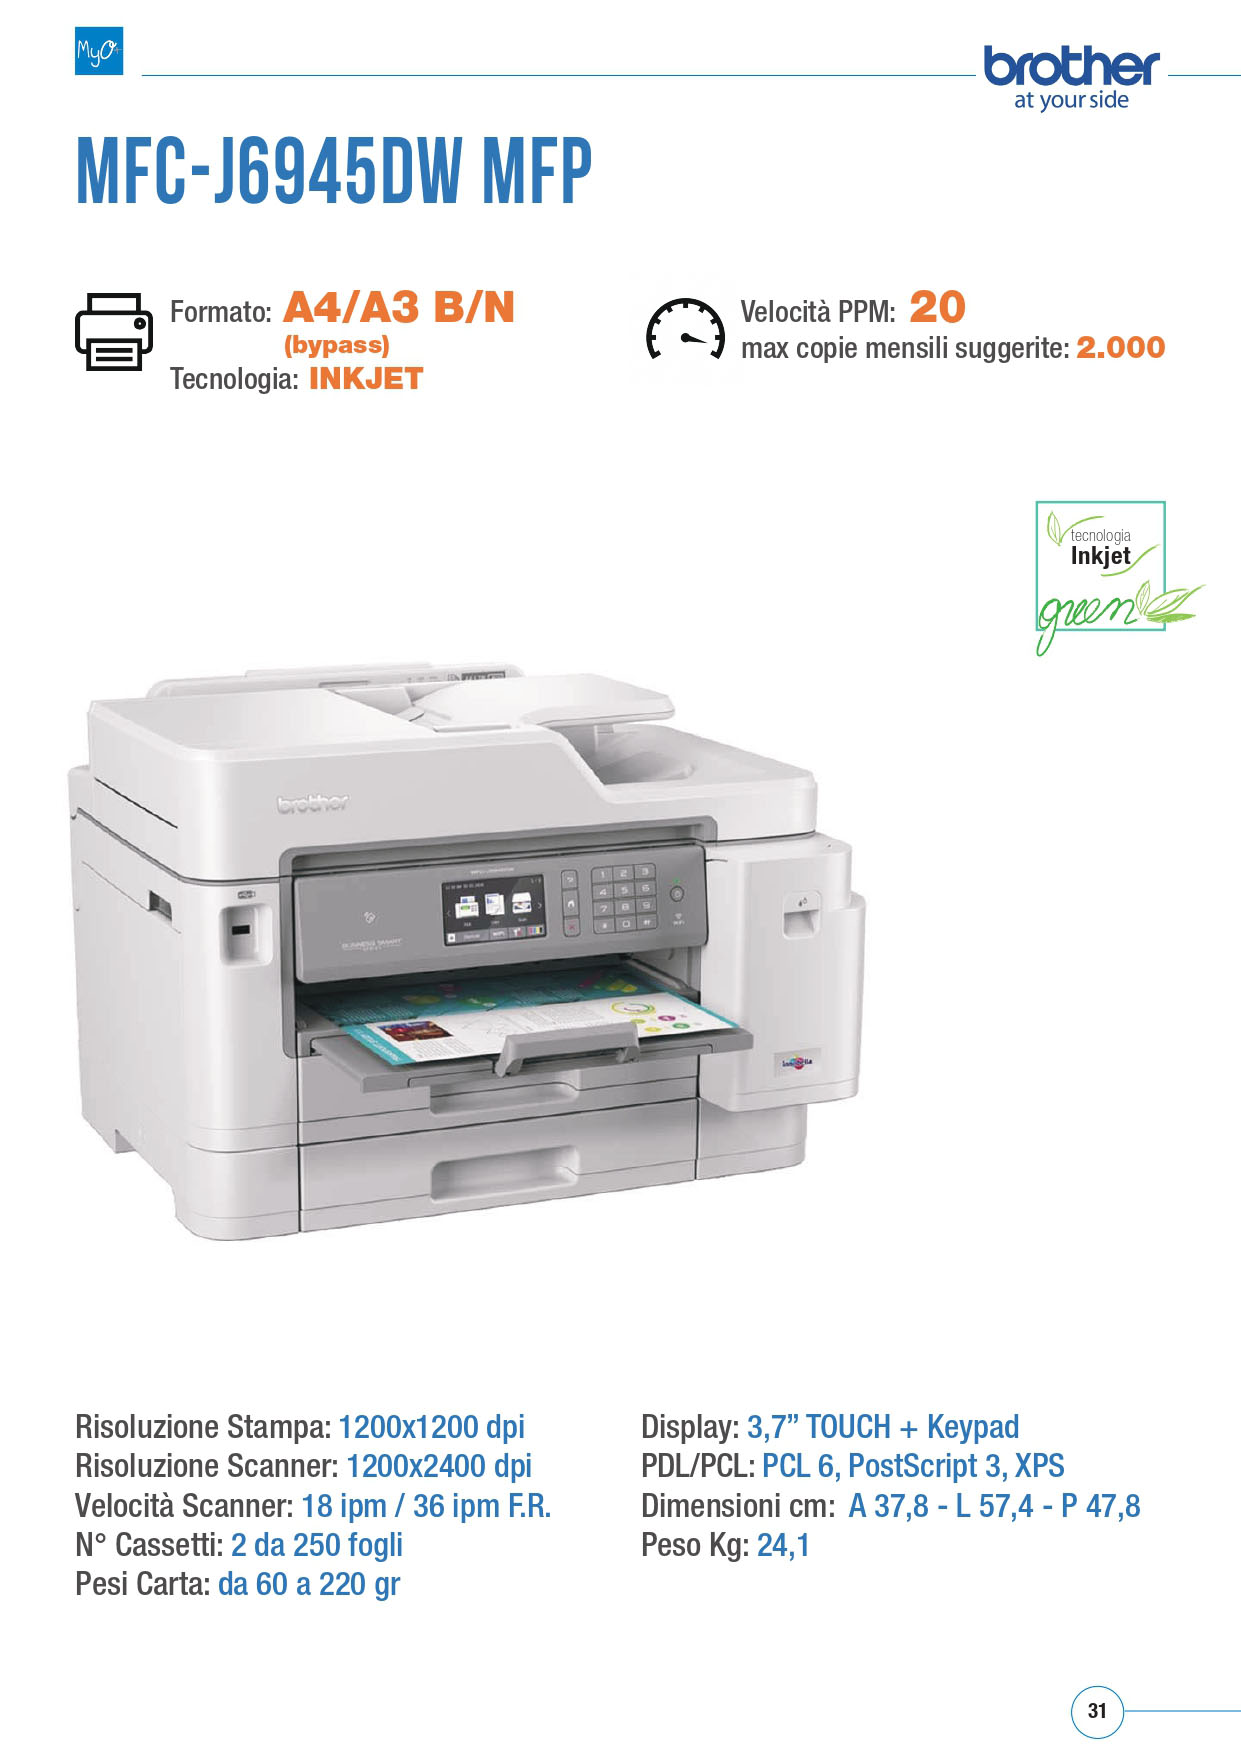 MFC BROTHER J6945DW MFP